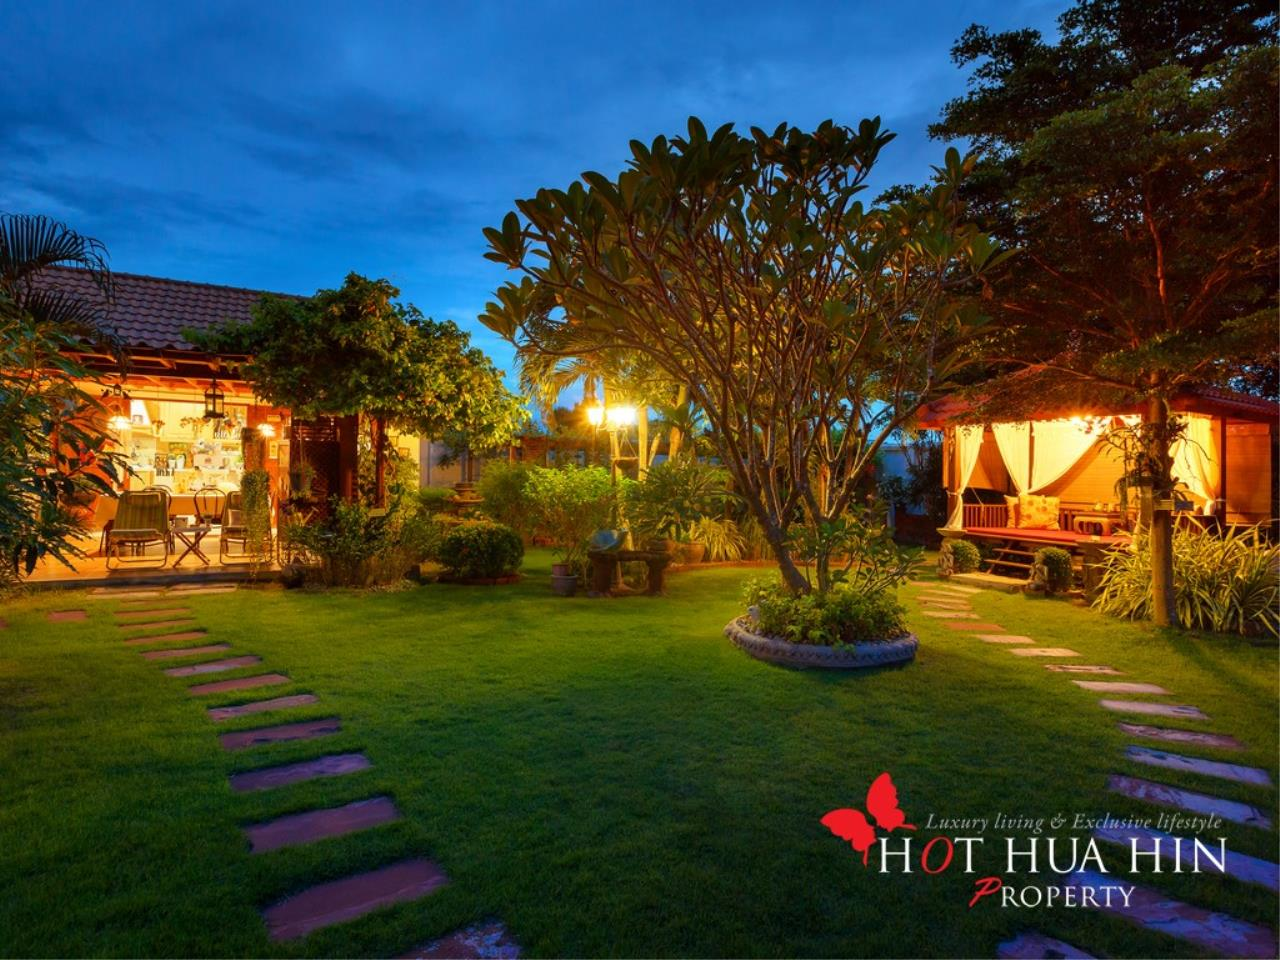 Hot Hua Hin Co. Ltd. Agency's Well Built Home With Stunning Gardens And Two Full Kitchens 41